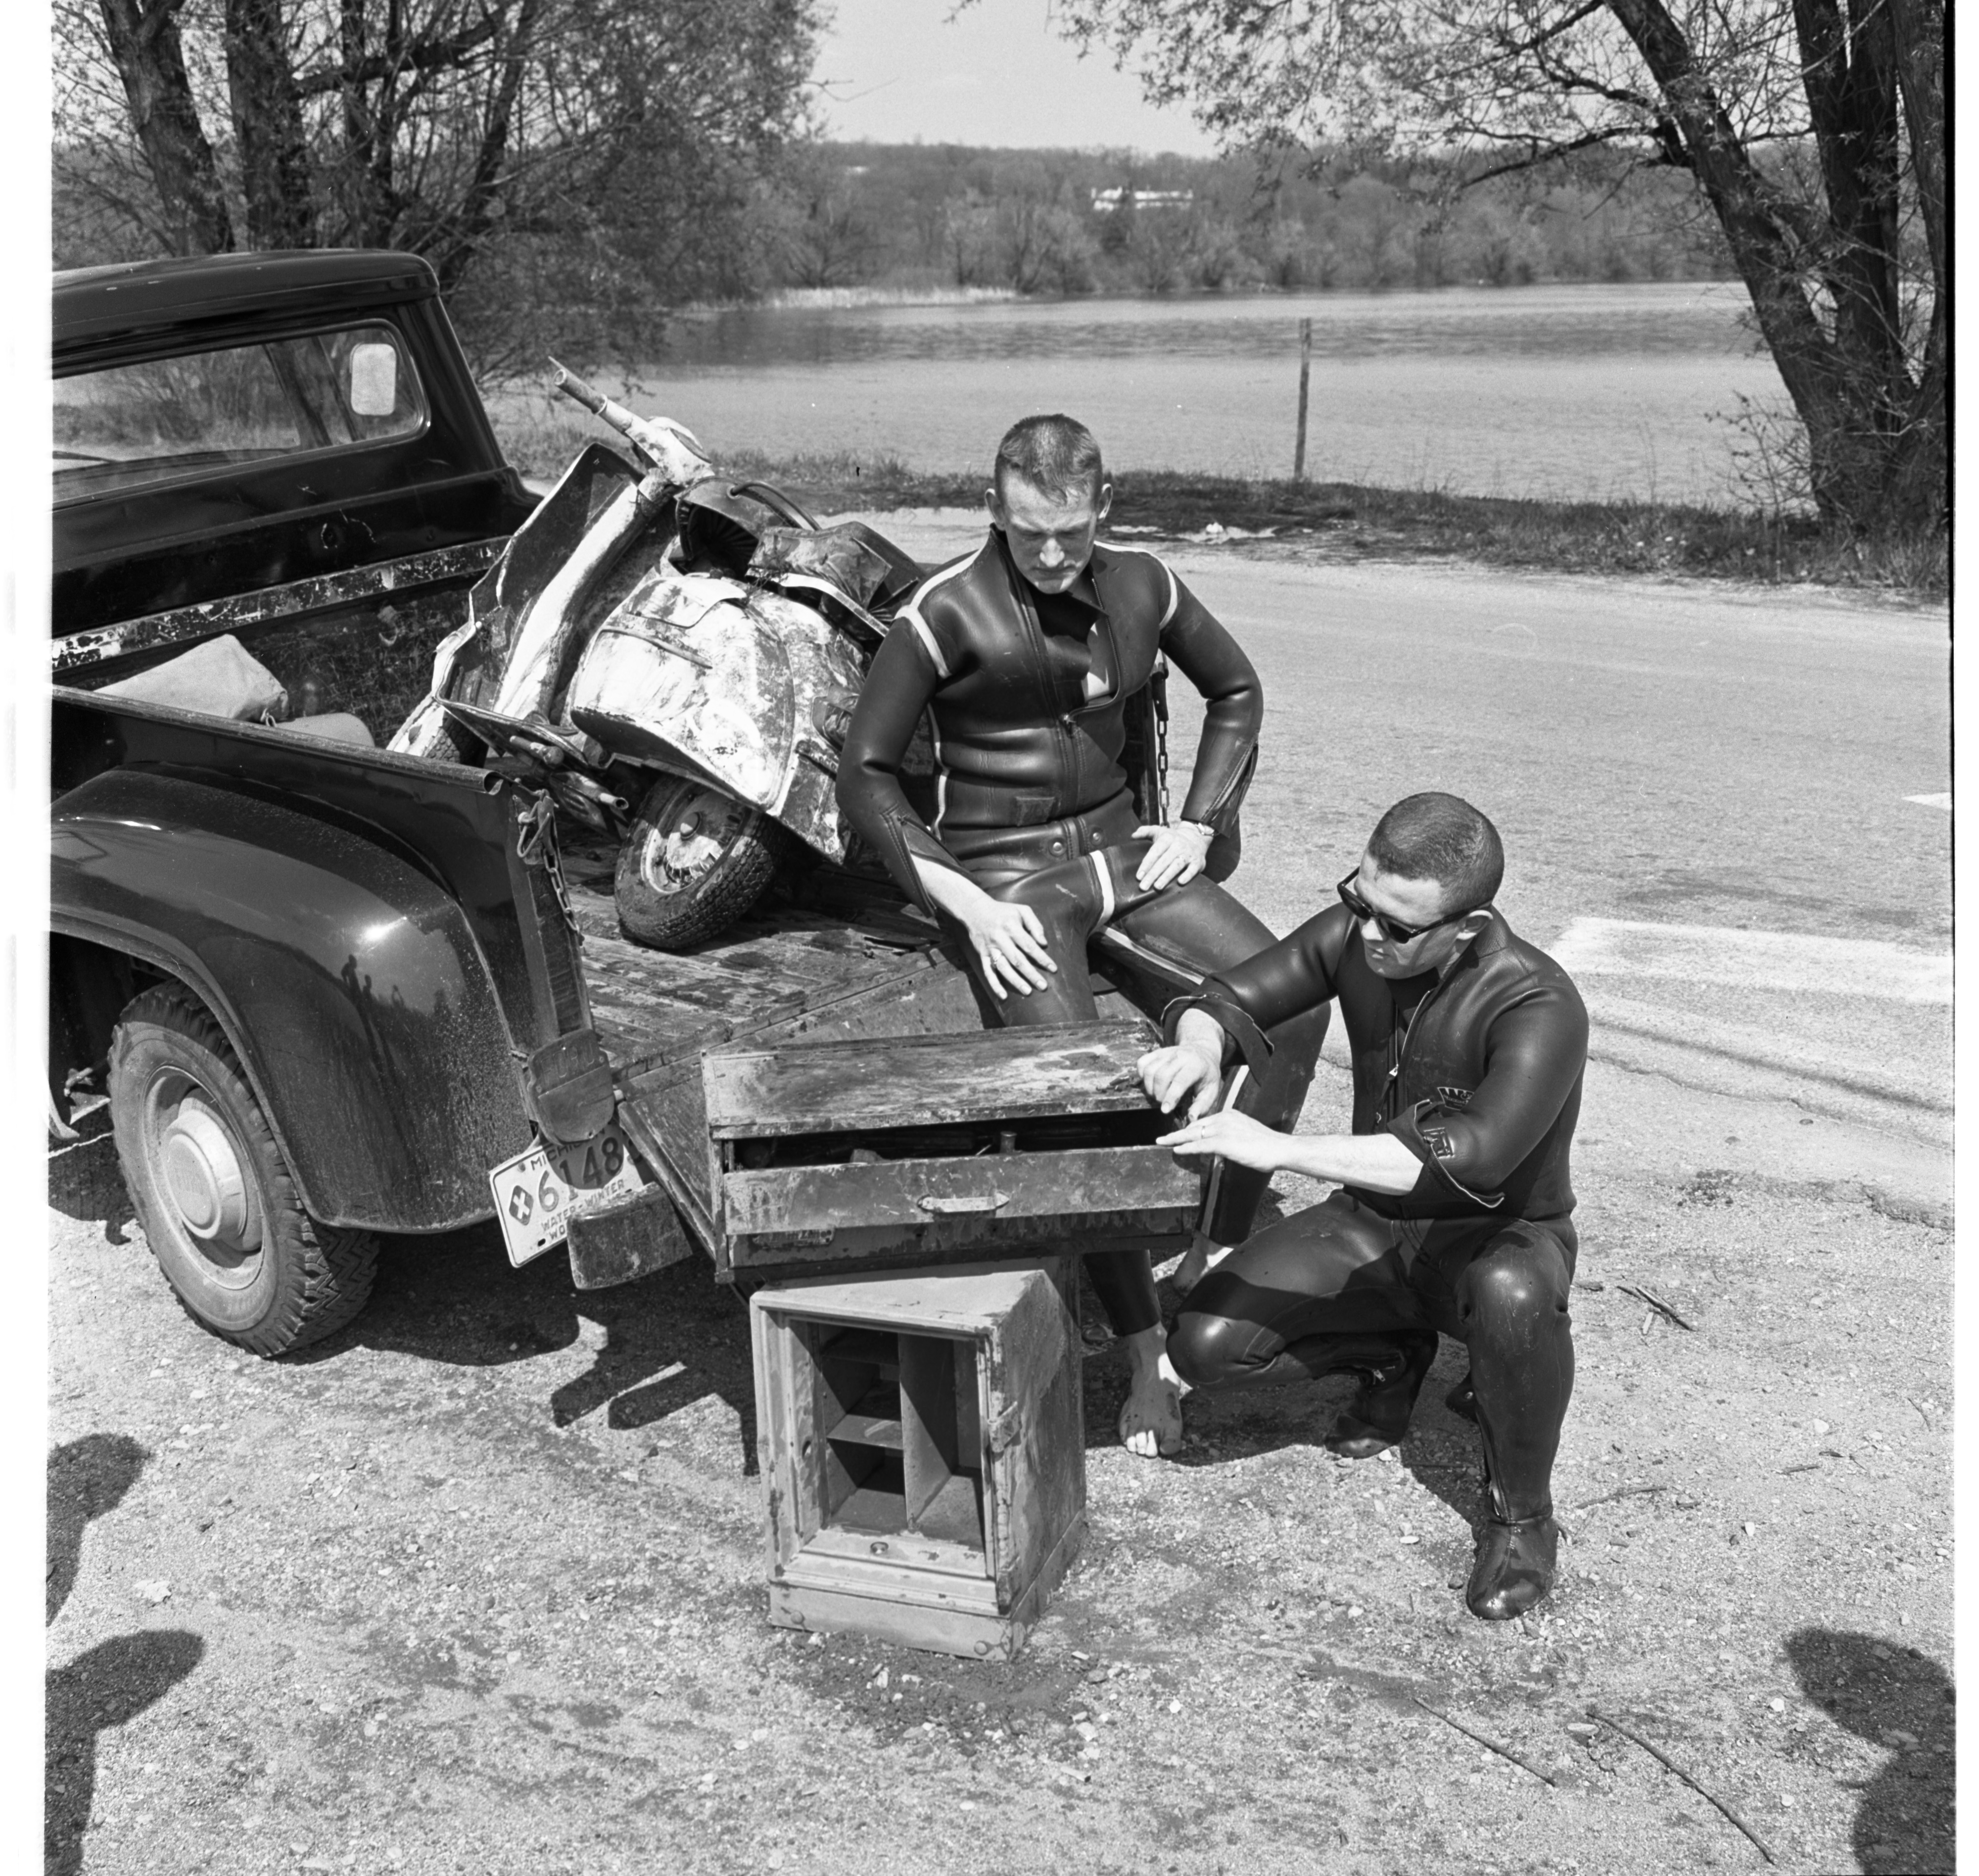 Officers With Stolen Property Recovered From Huron River, May 1967 image